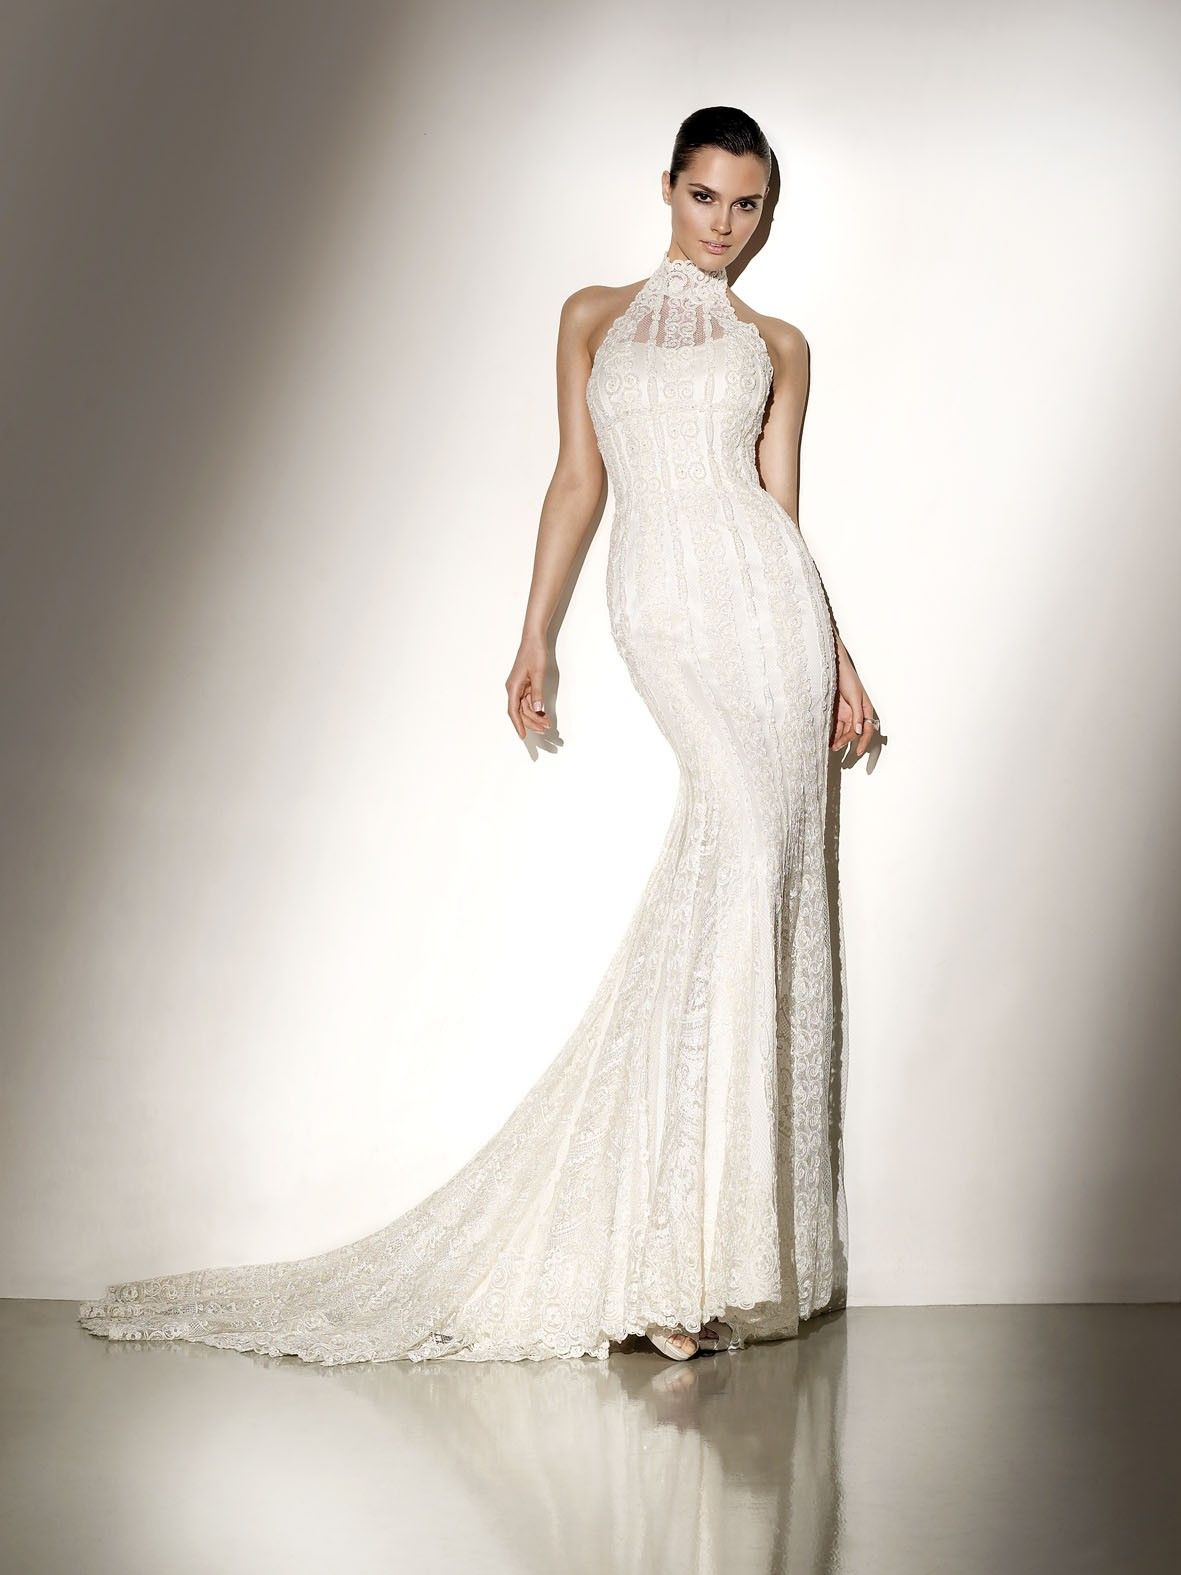 Wedding dress with collar  High Collar Lace Appliqued Satin Wedding Gown  Designer